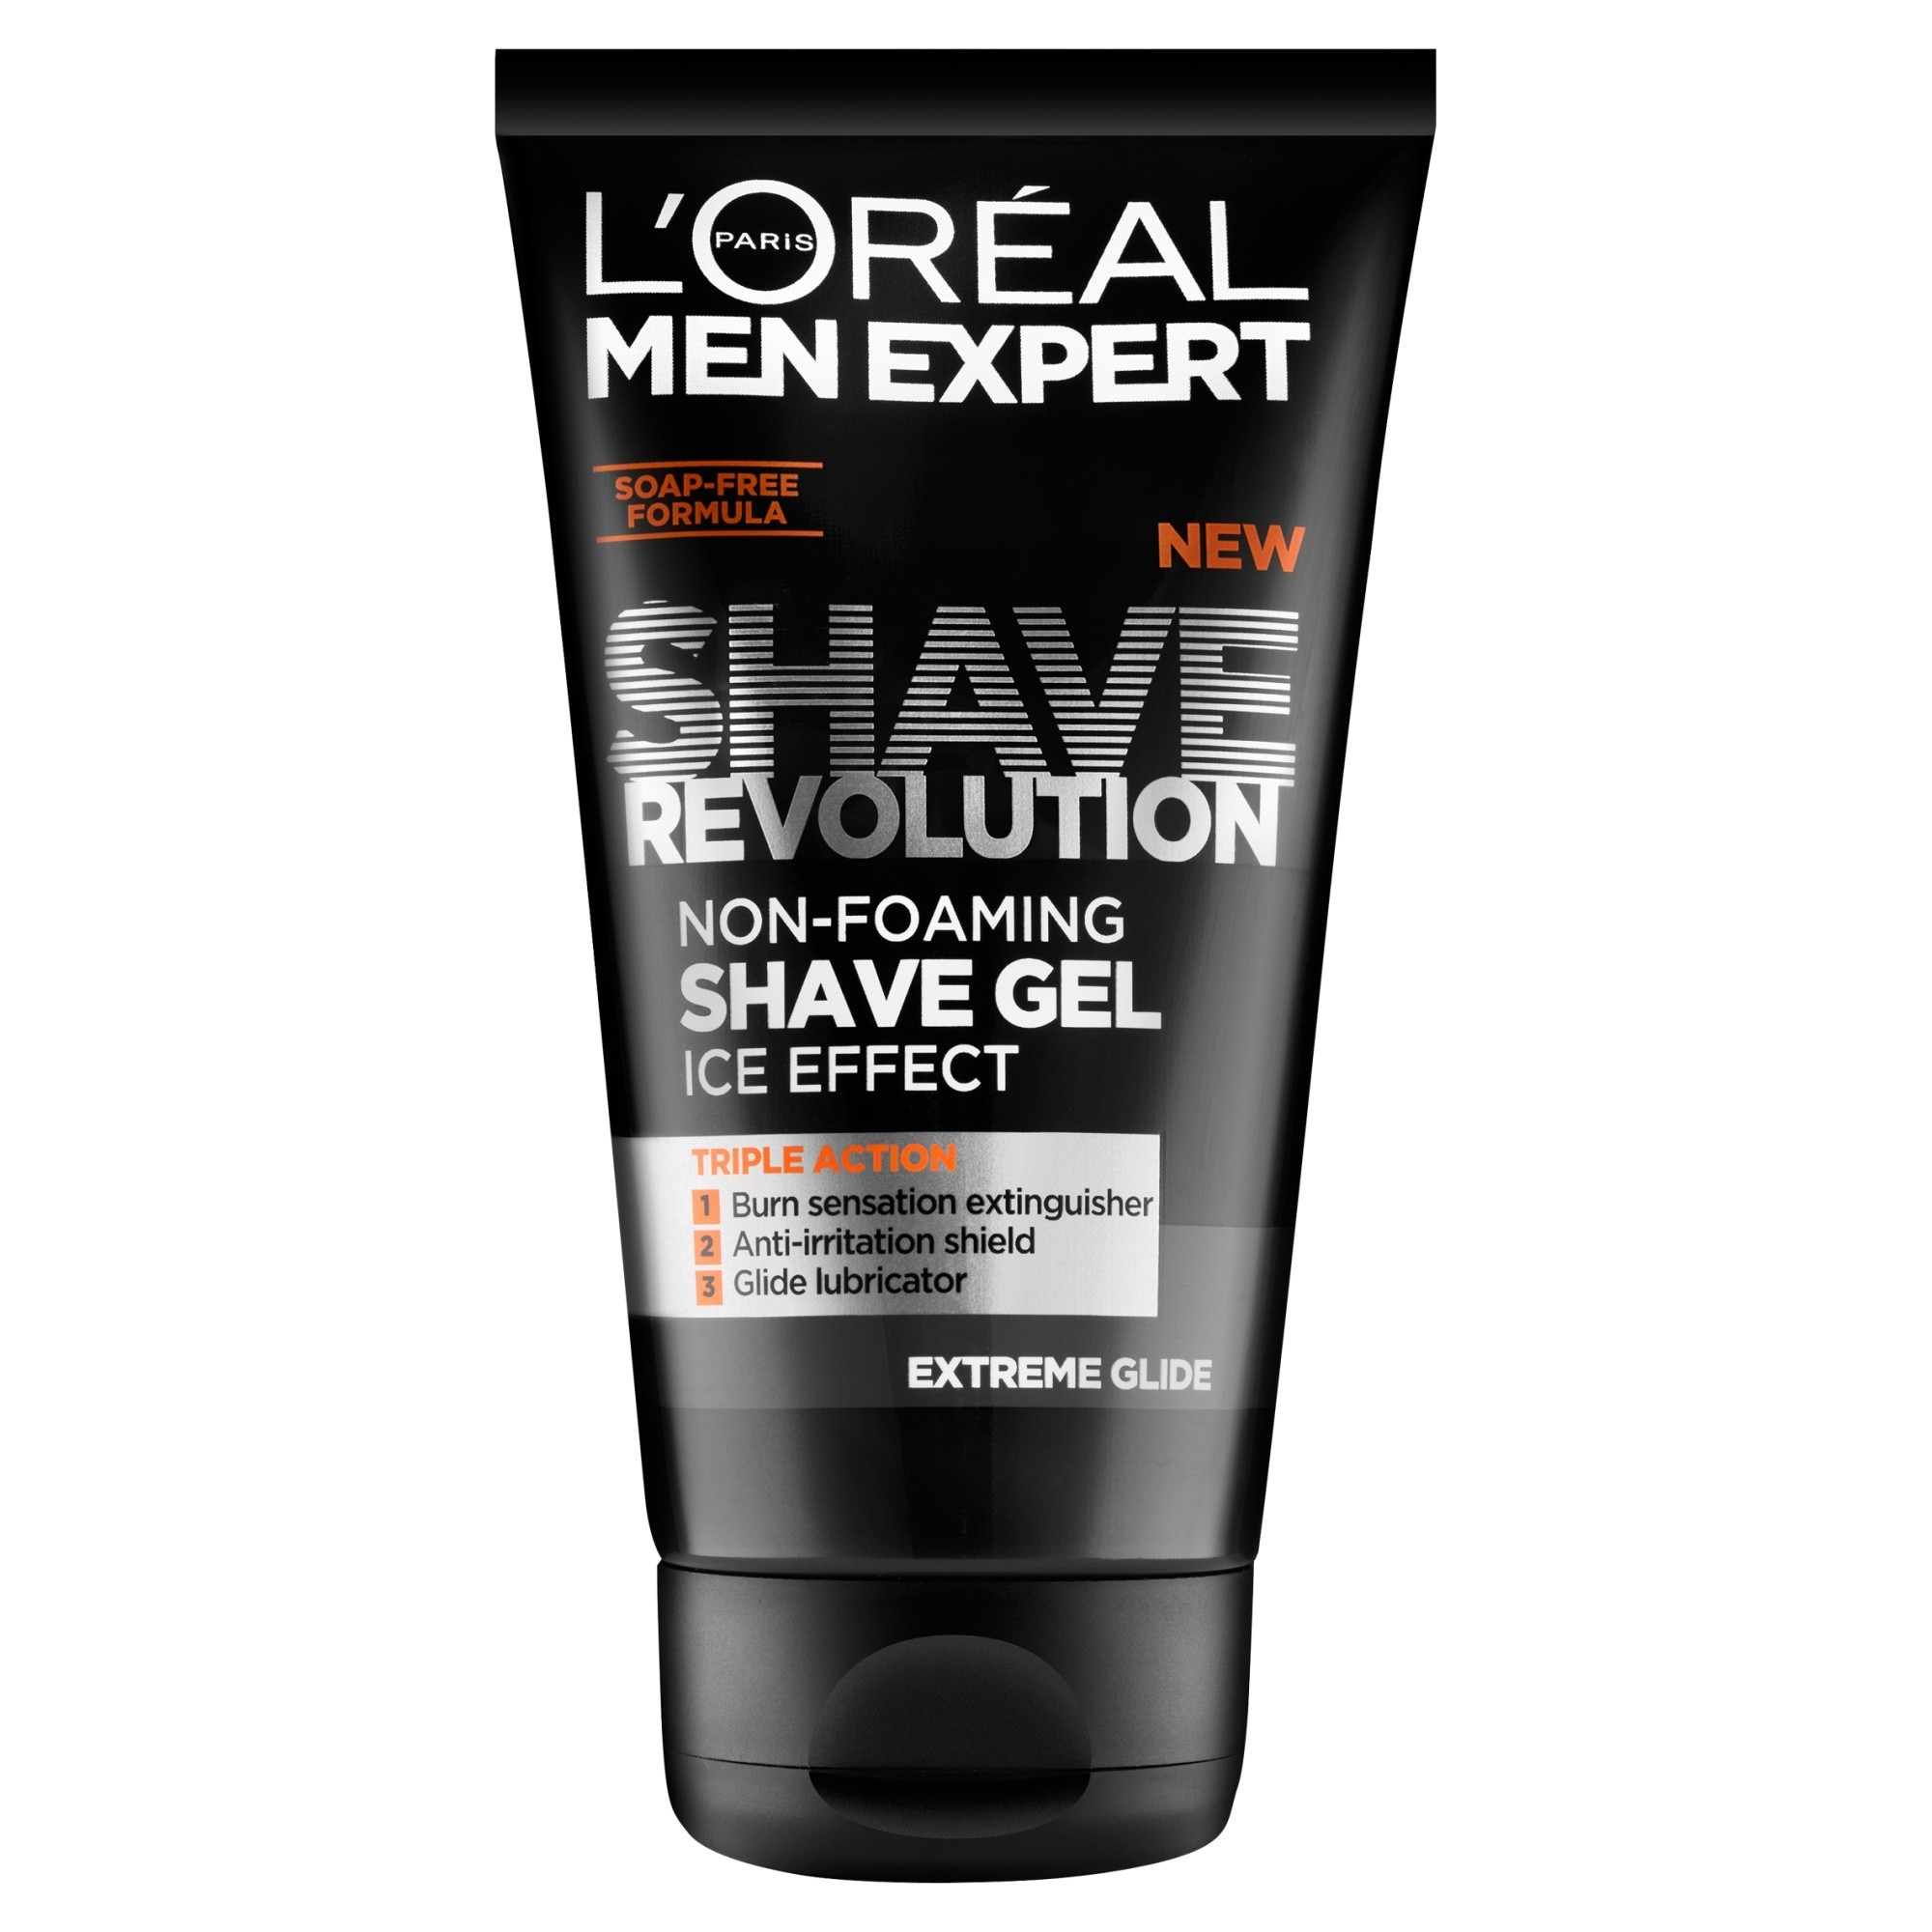 LOreal Paris Men Expert Shave Revolution Glide Shave Gel